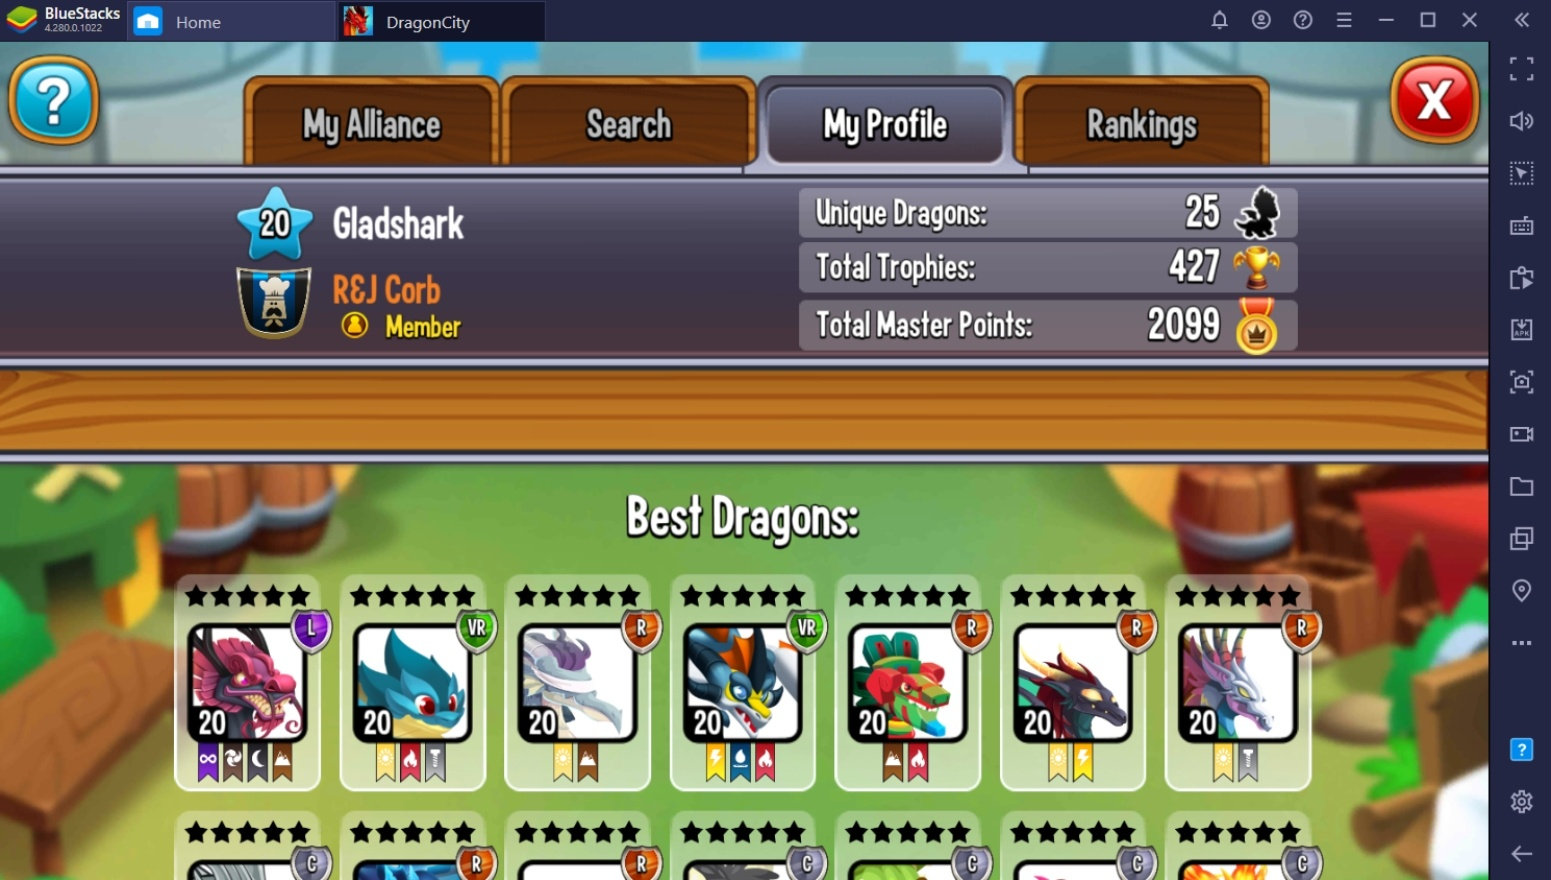 BlueStacks' Beginners Guide to Playing Dragon City